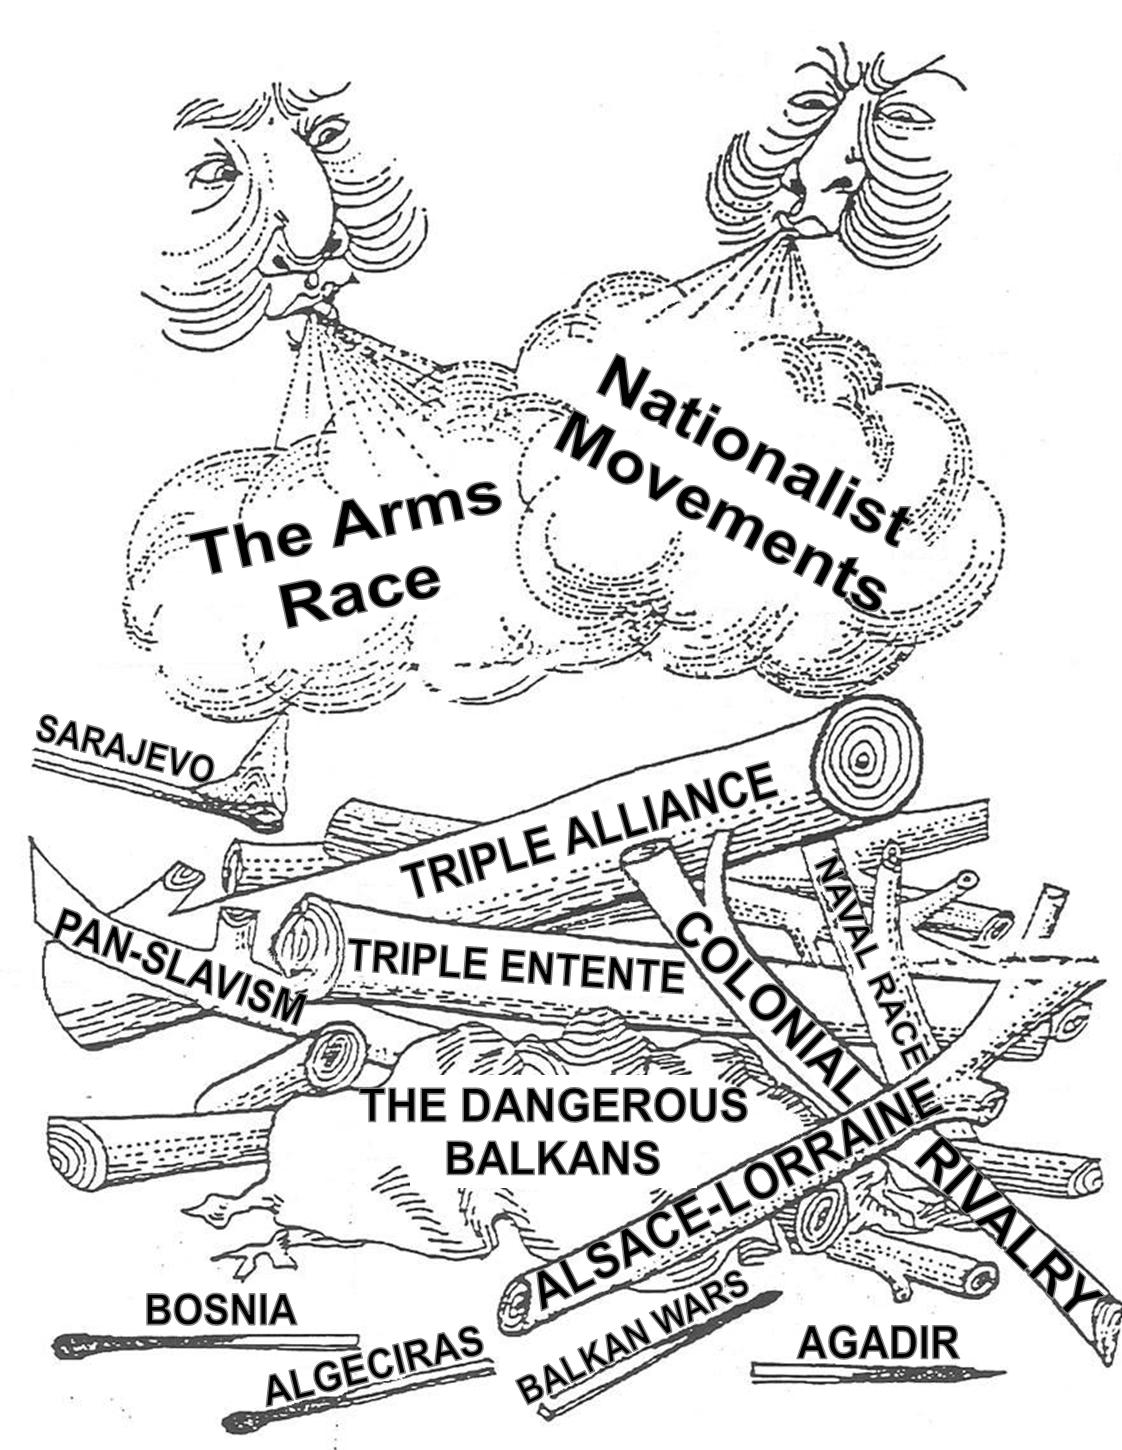 MAIN CAUSES FOR WW1